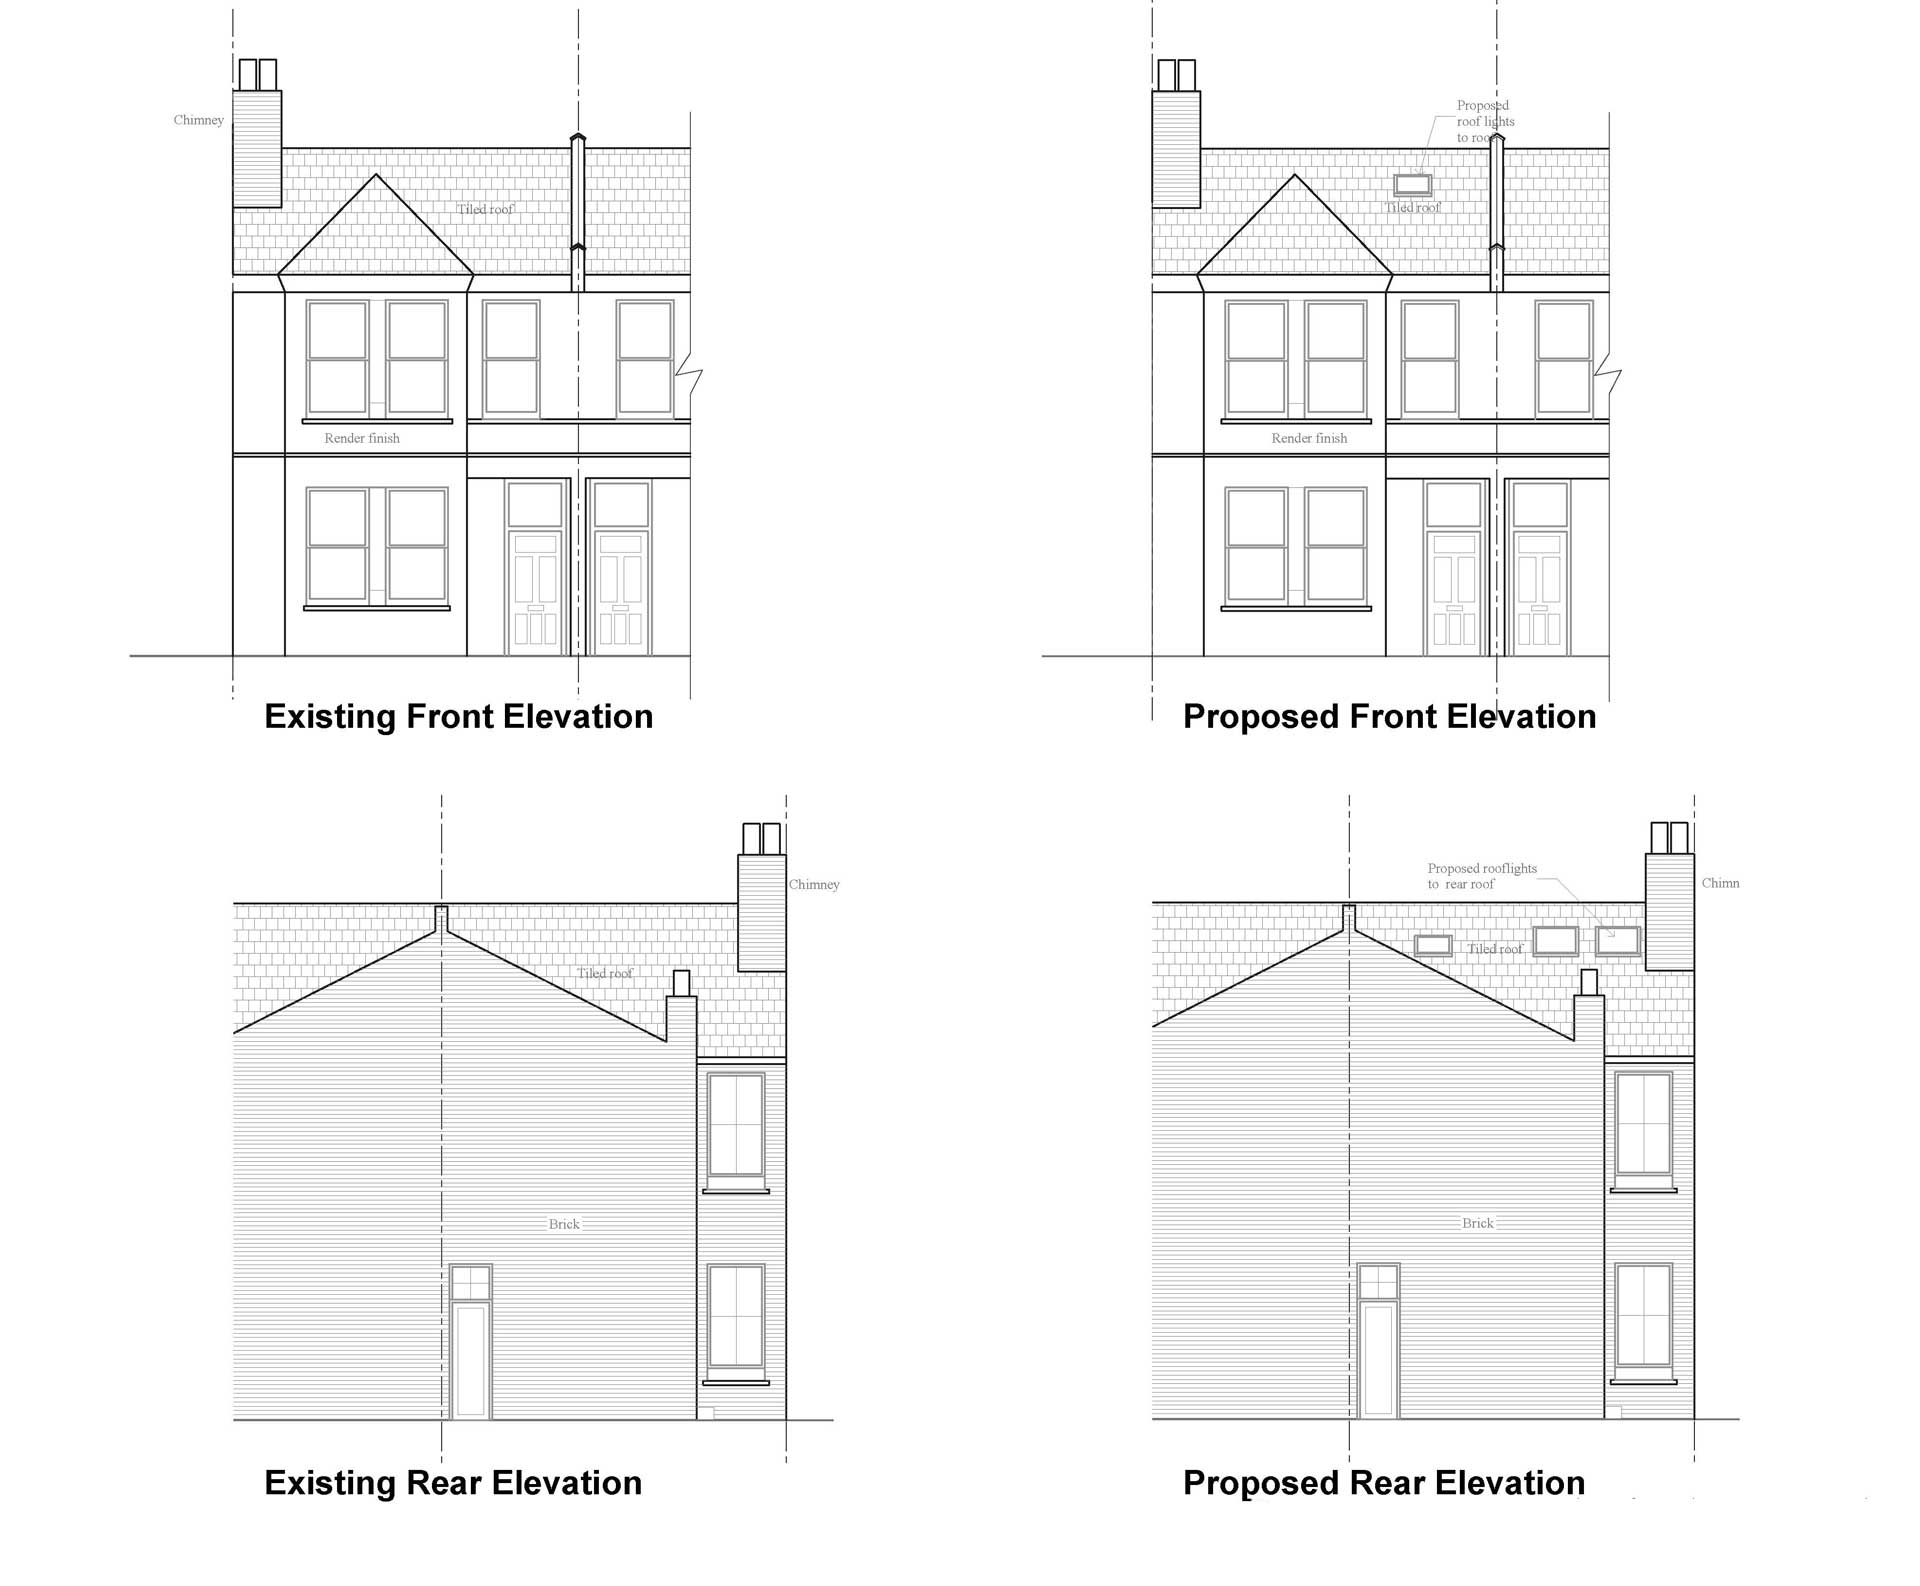 Front Elevation Planning Permission : Lambeth council front and rear elevation extension